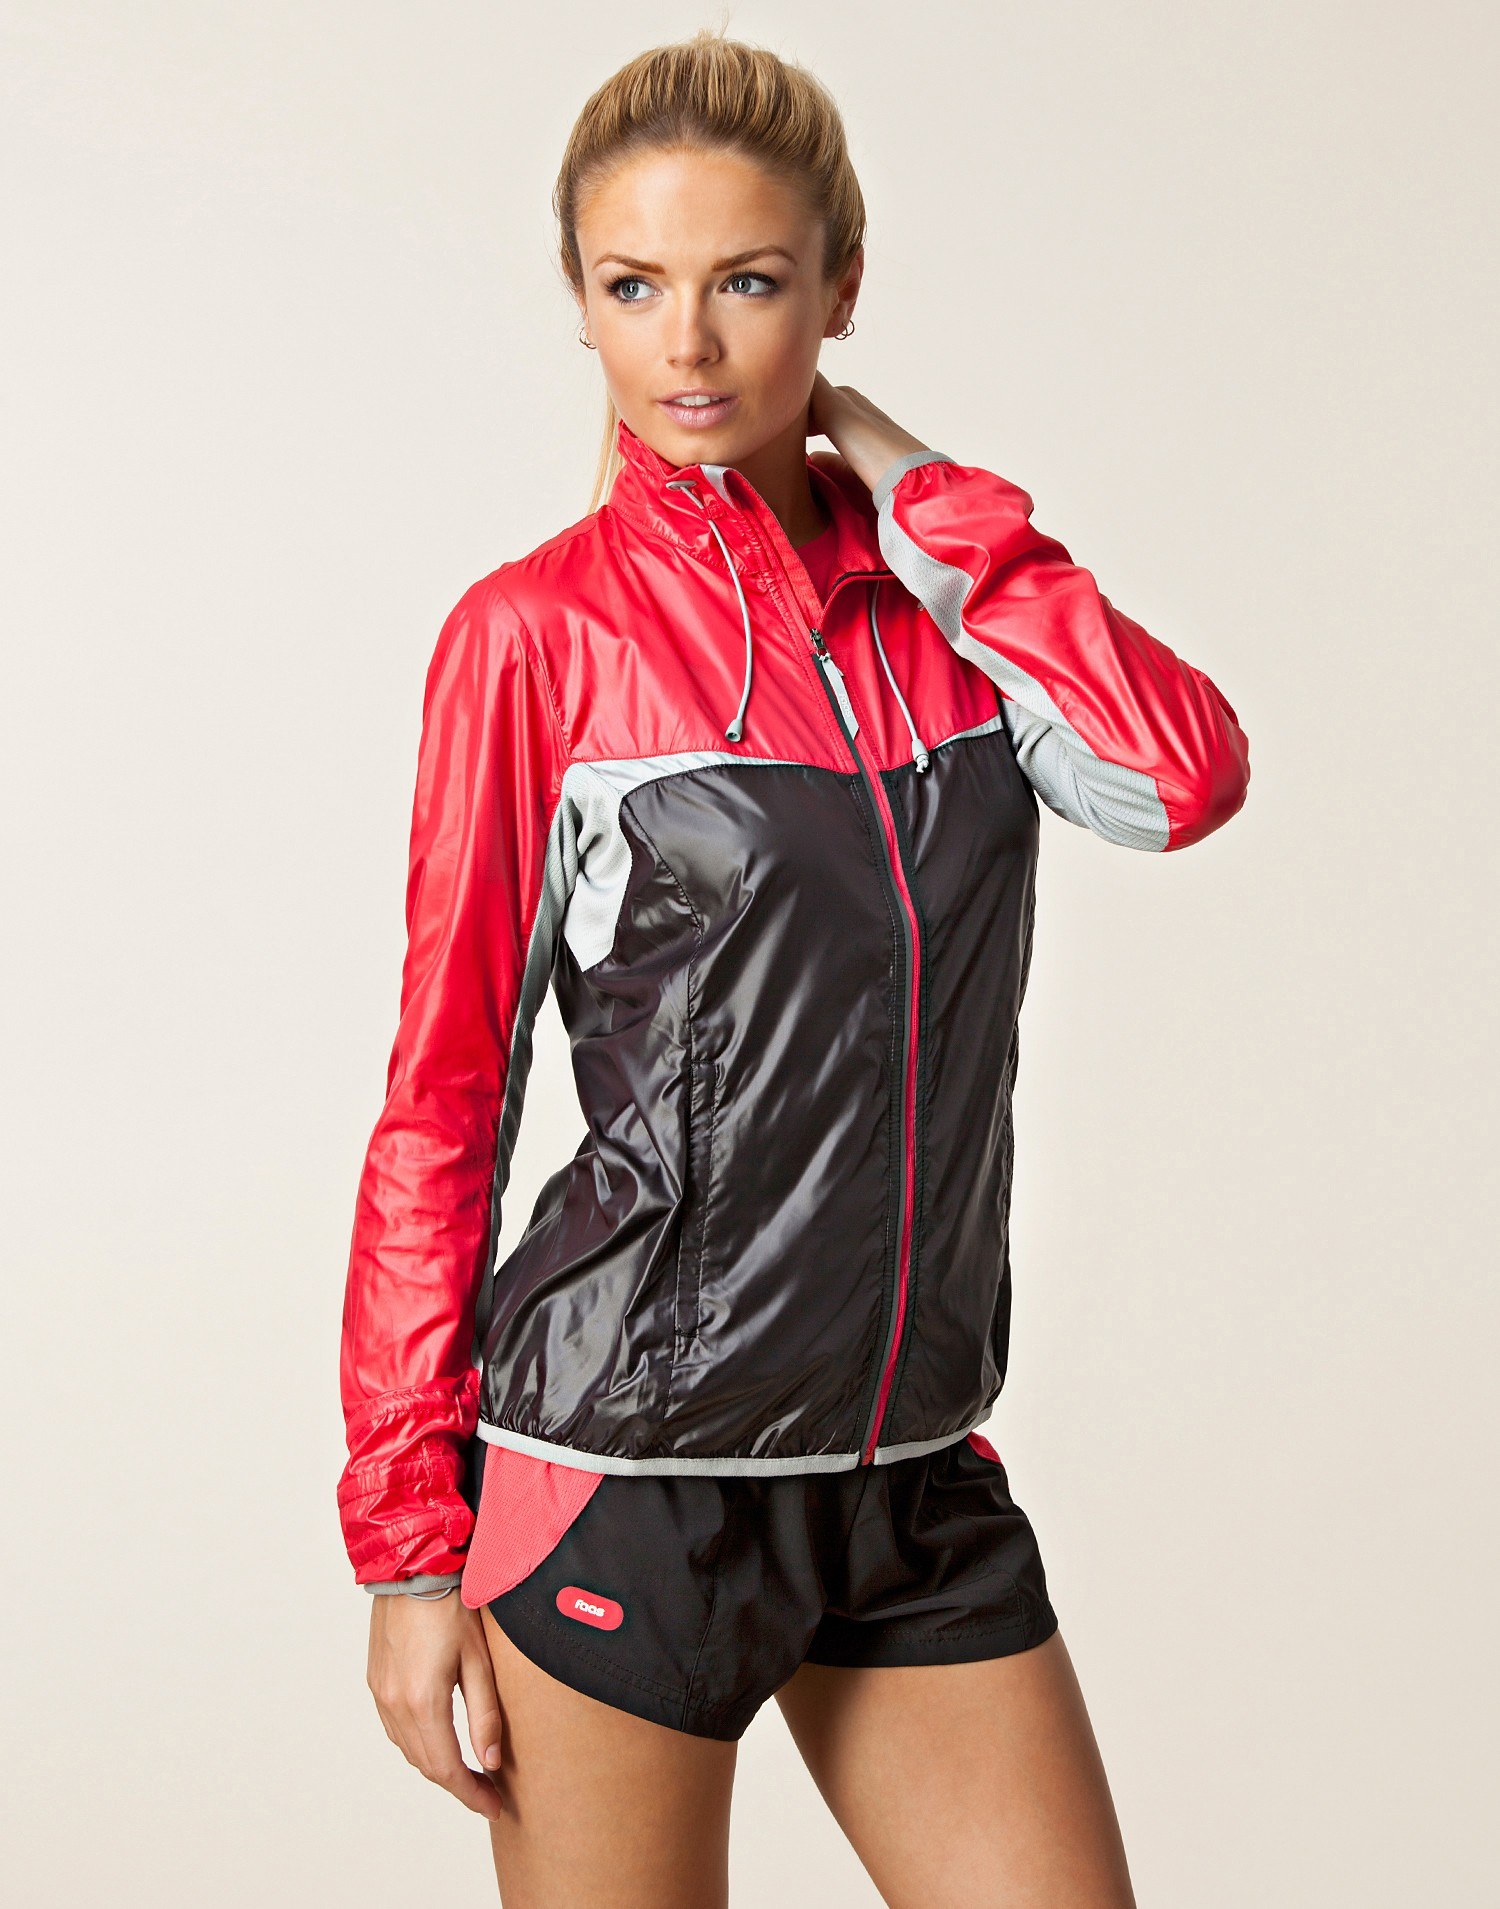 Black and Red Shiny Puma Jacket Front View